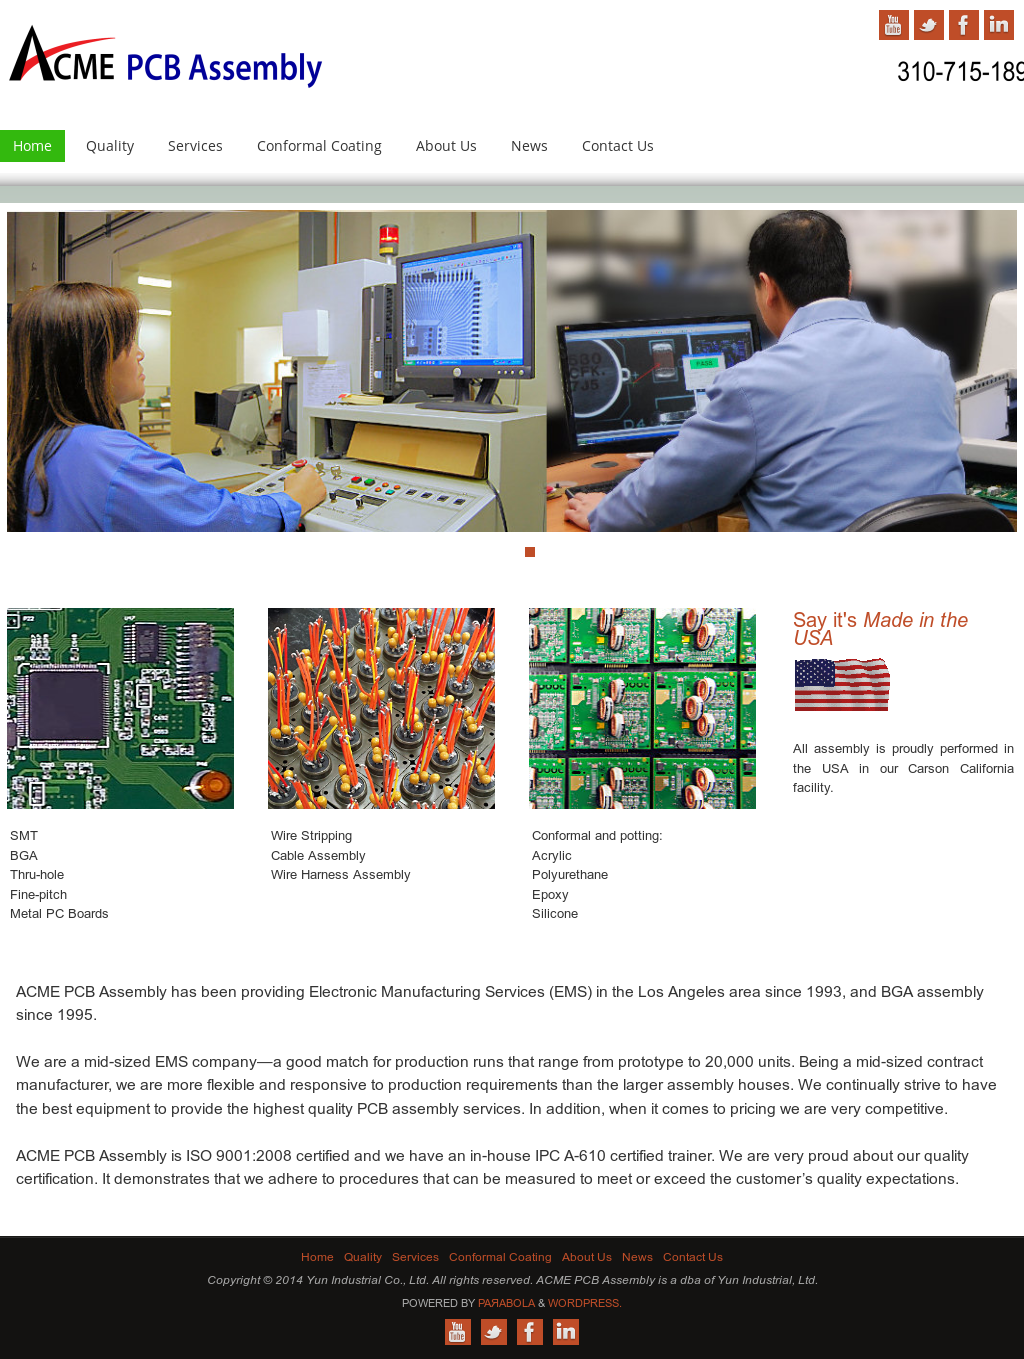 ACME PCB Assembly Competitors, Revenue and Employees - Owler Company ...